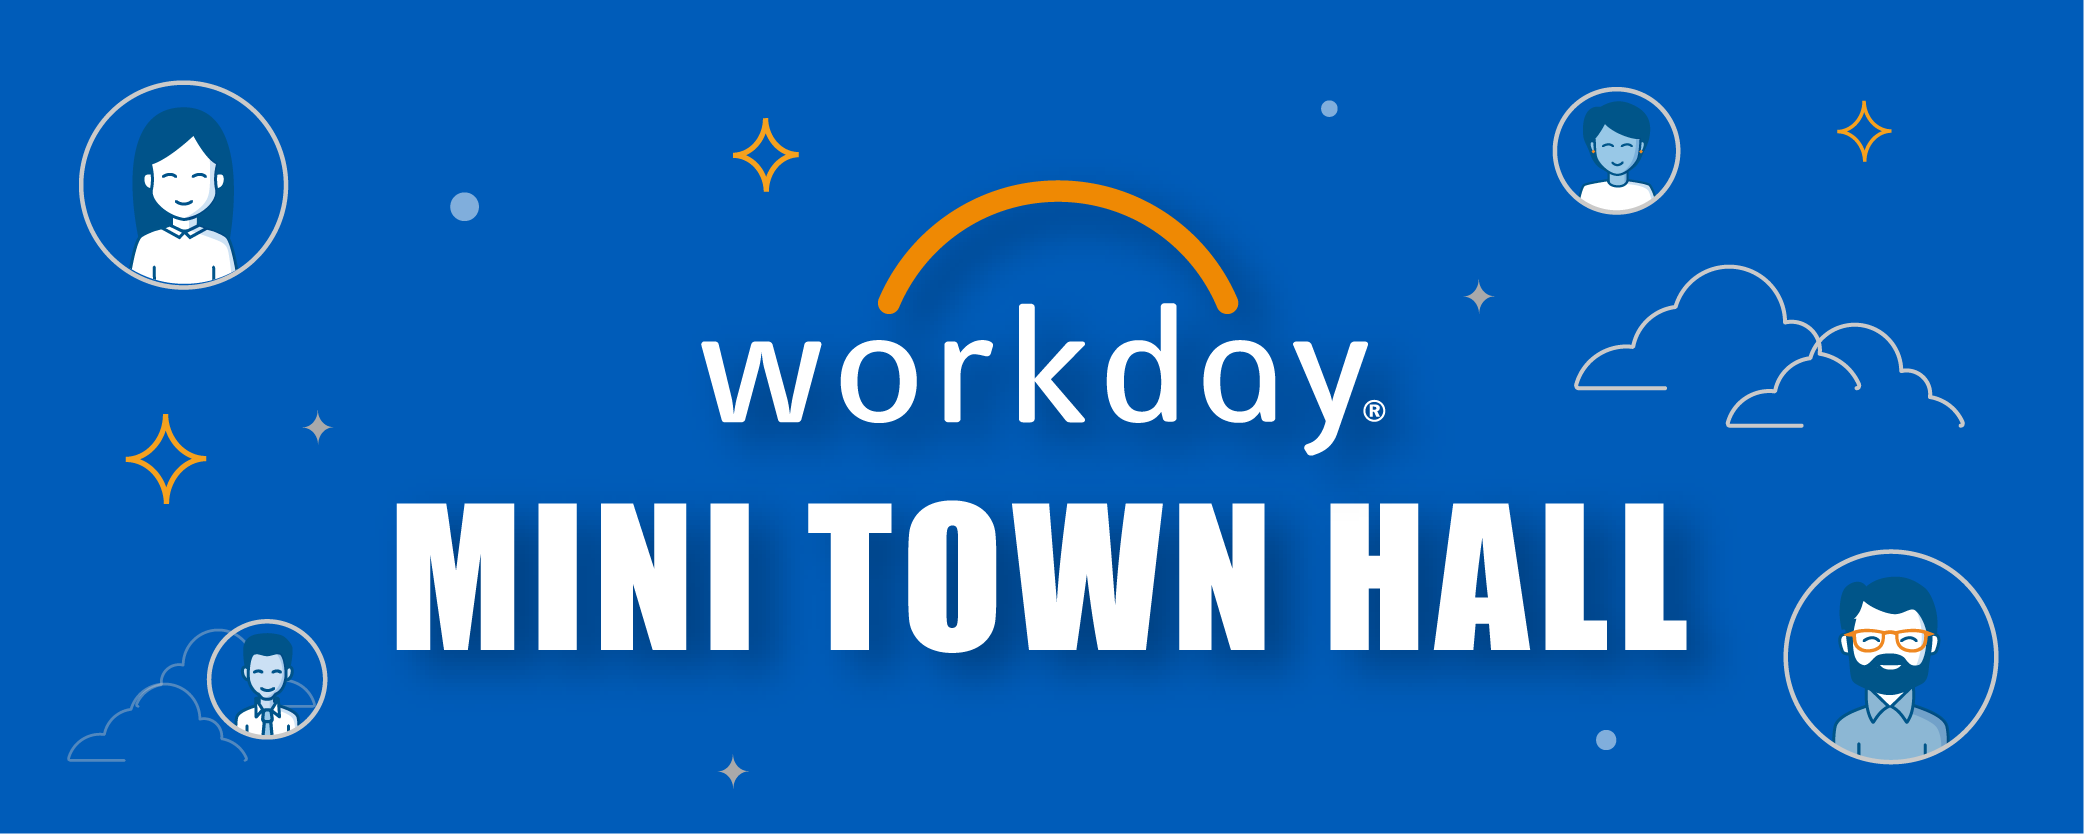 Workday Mini Town Hall banner